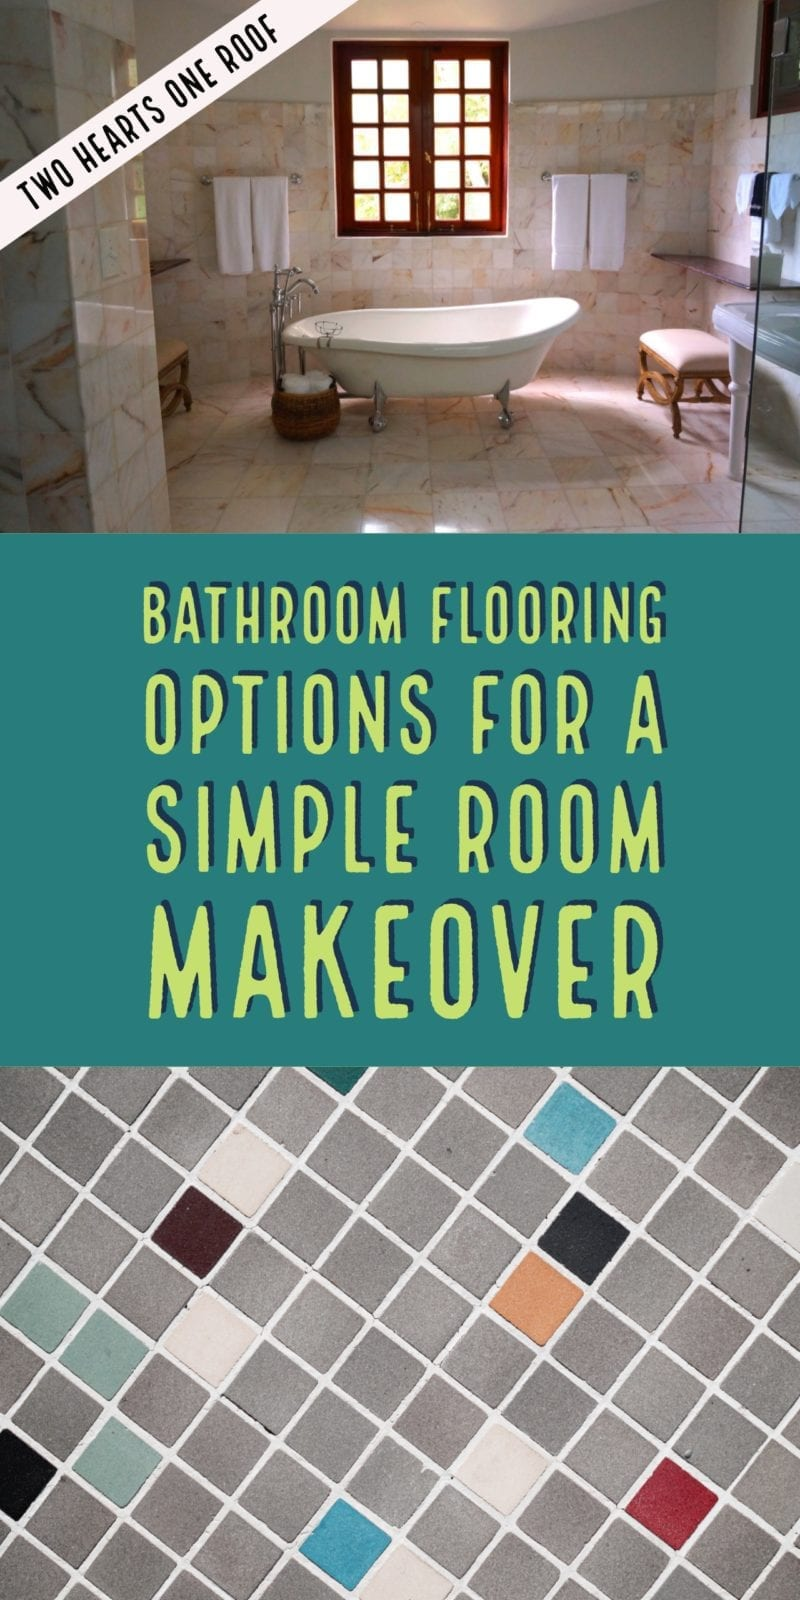 Bathroom Flooring Options For A Simple Room Makeover